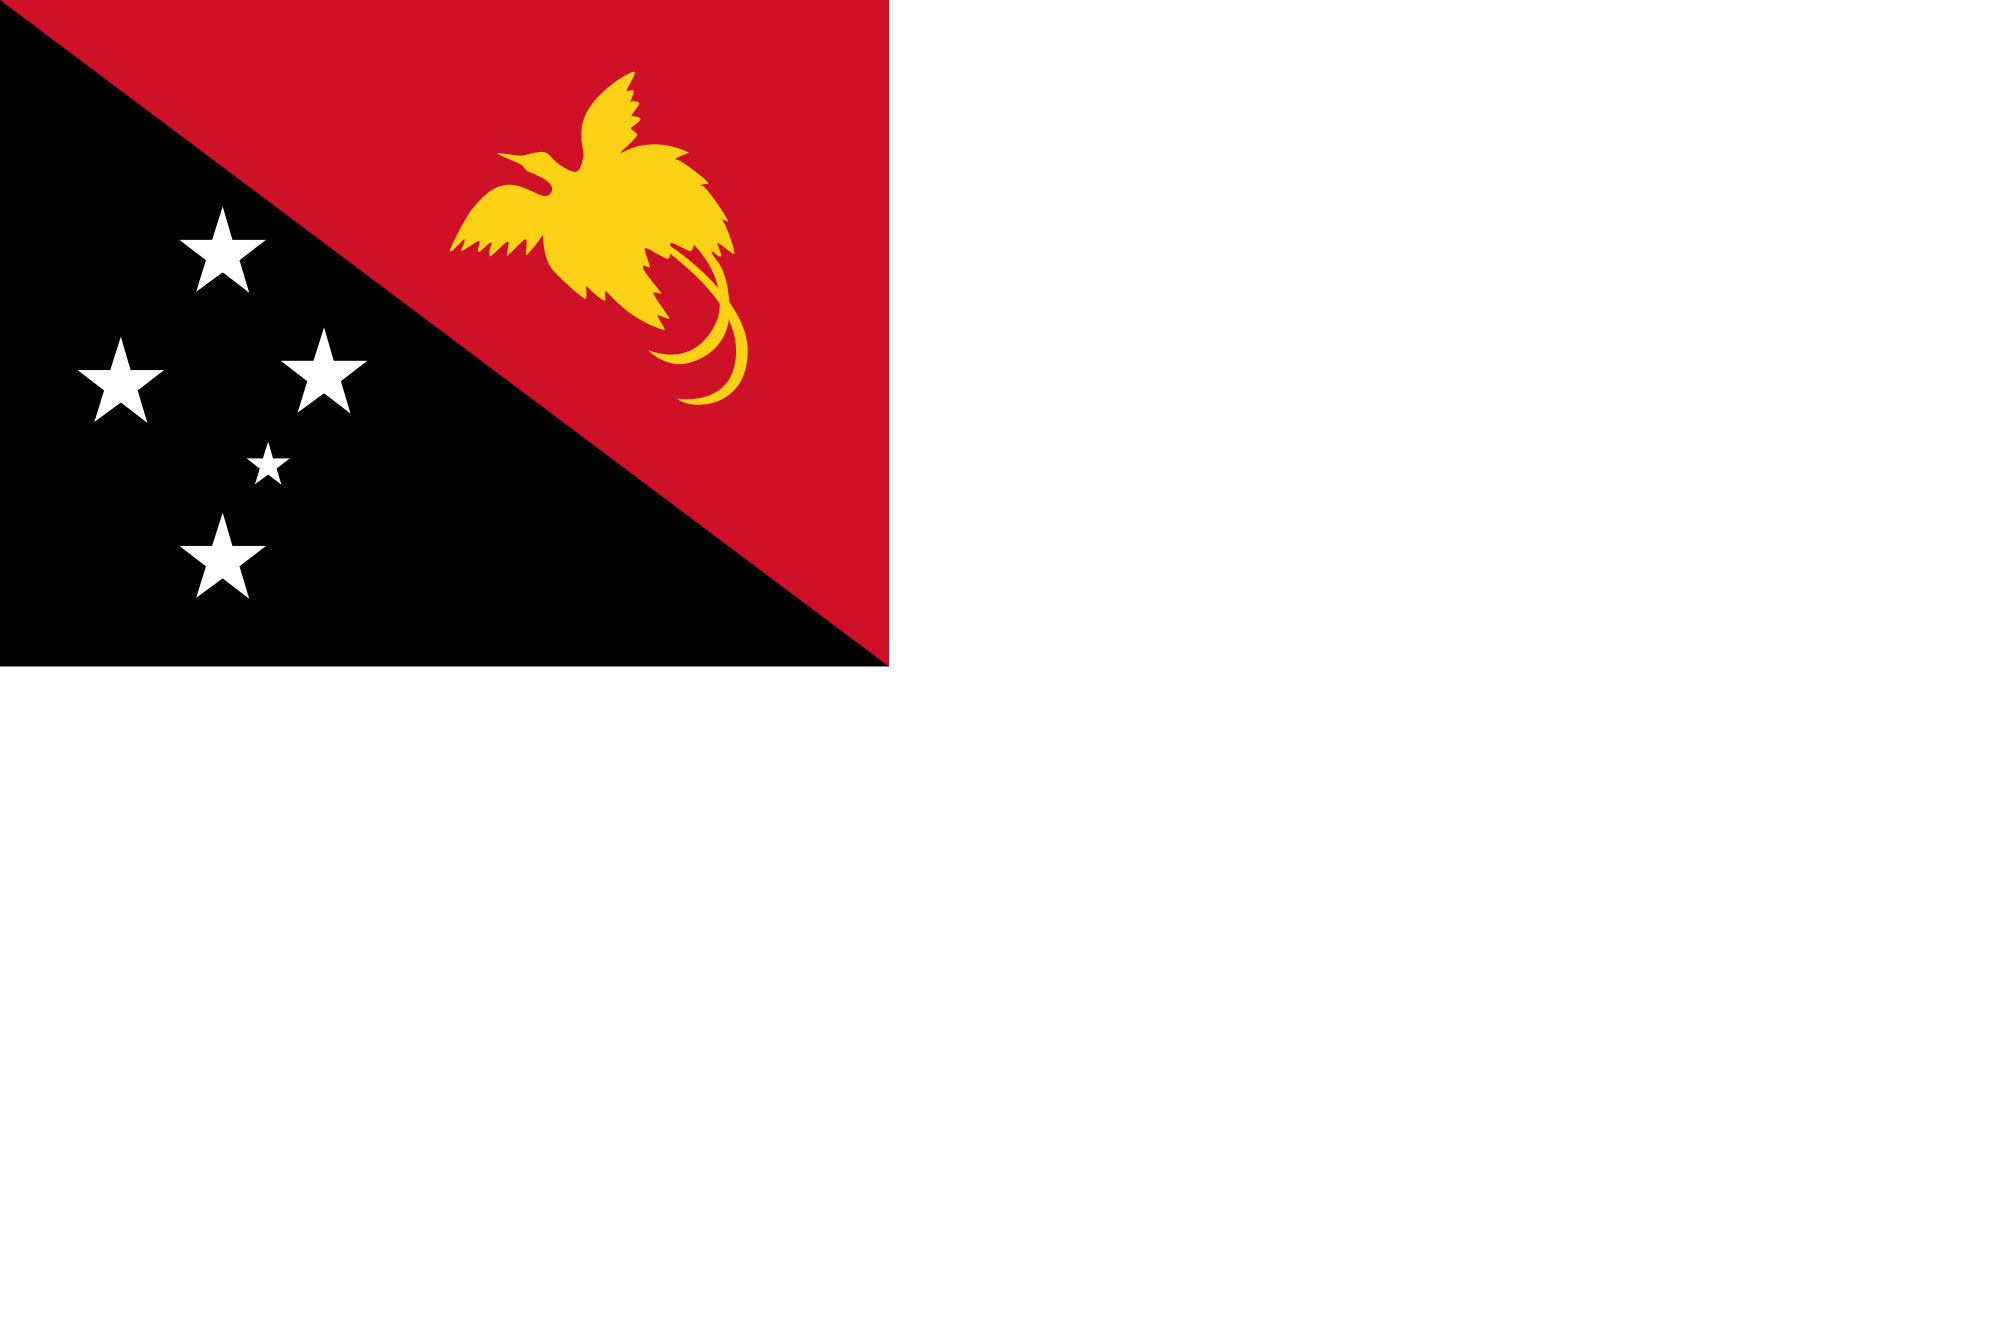 Papua New Guinea (Naval ensign)